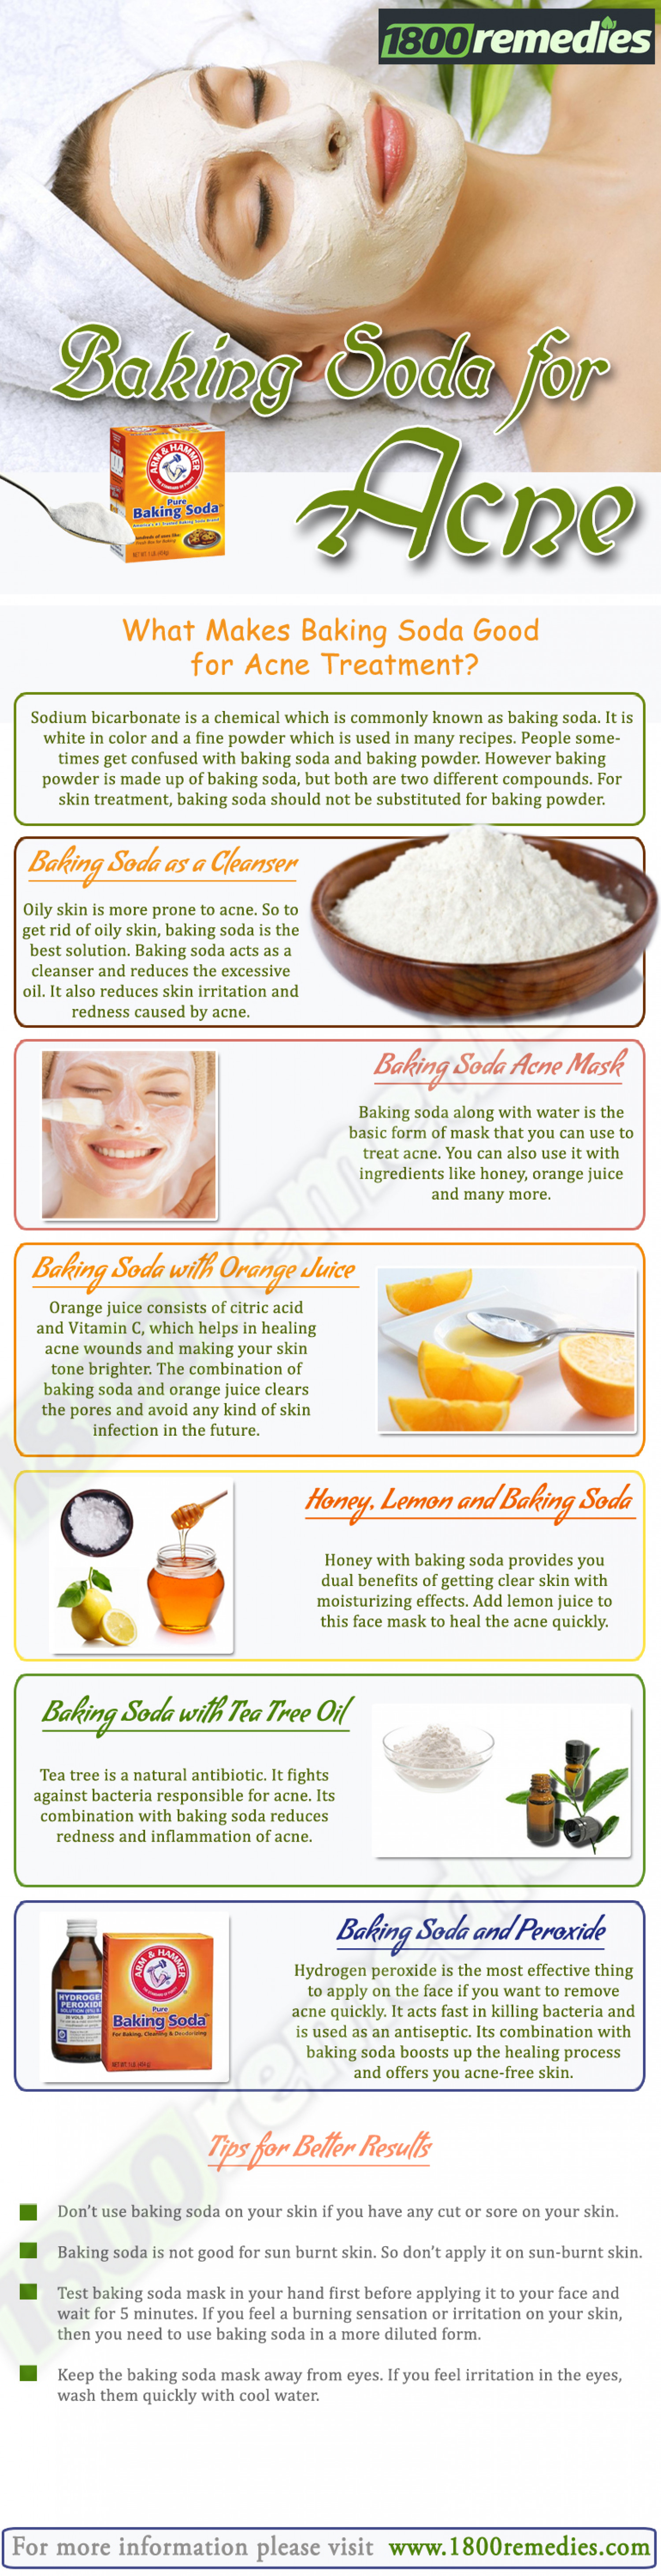 Baking Soda for Acne Treatment Infographic